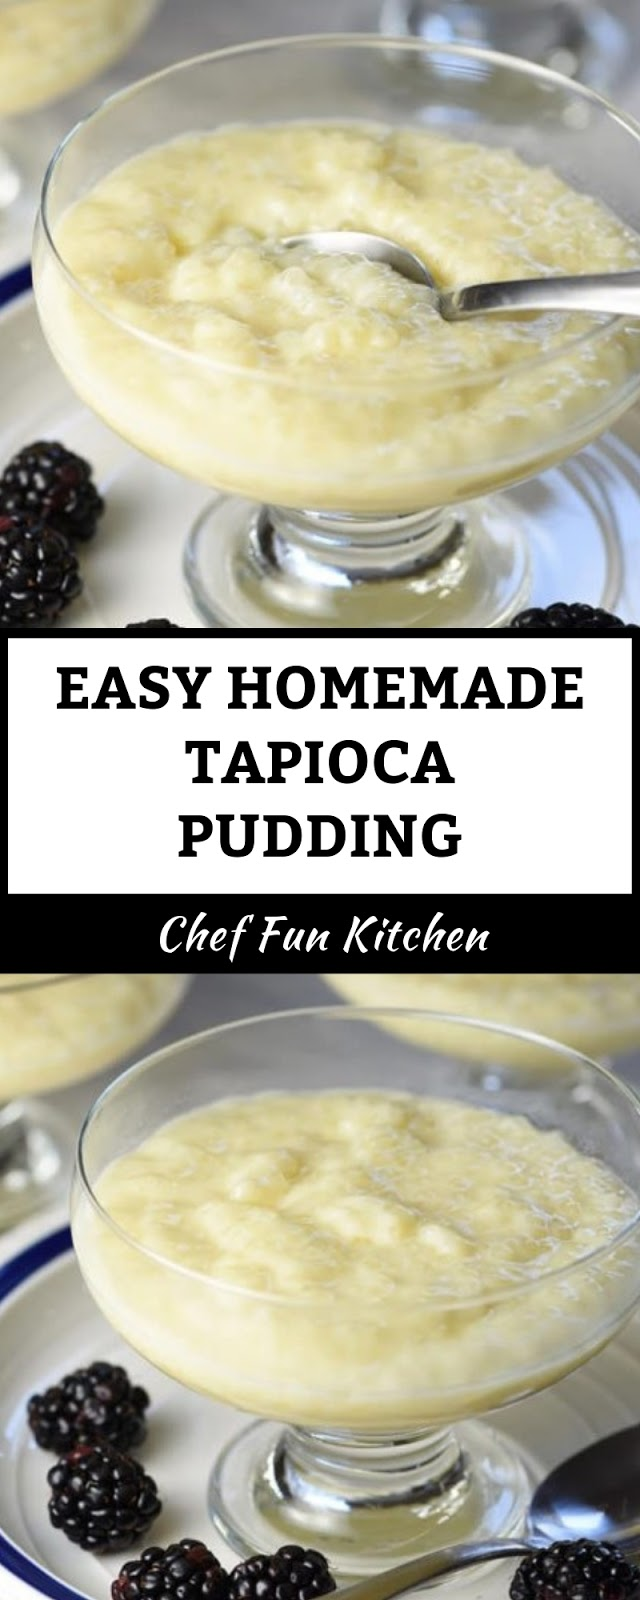 EASY HOMEMADE TAPIOCA PUDDING